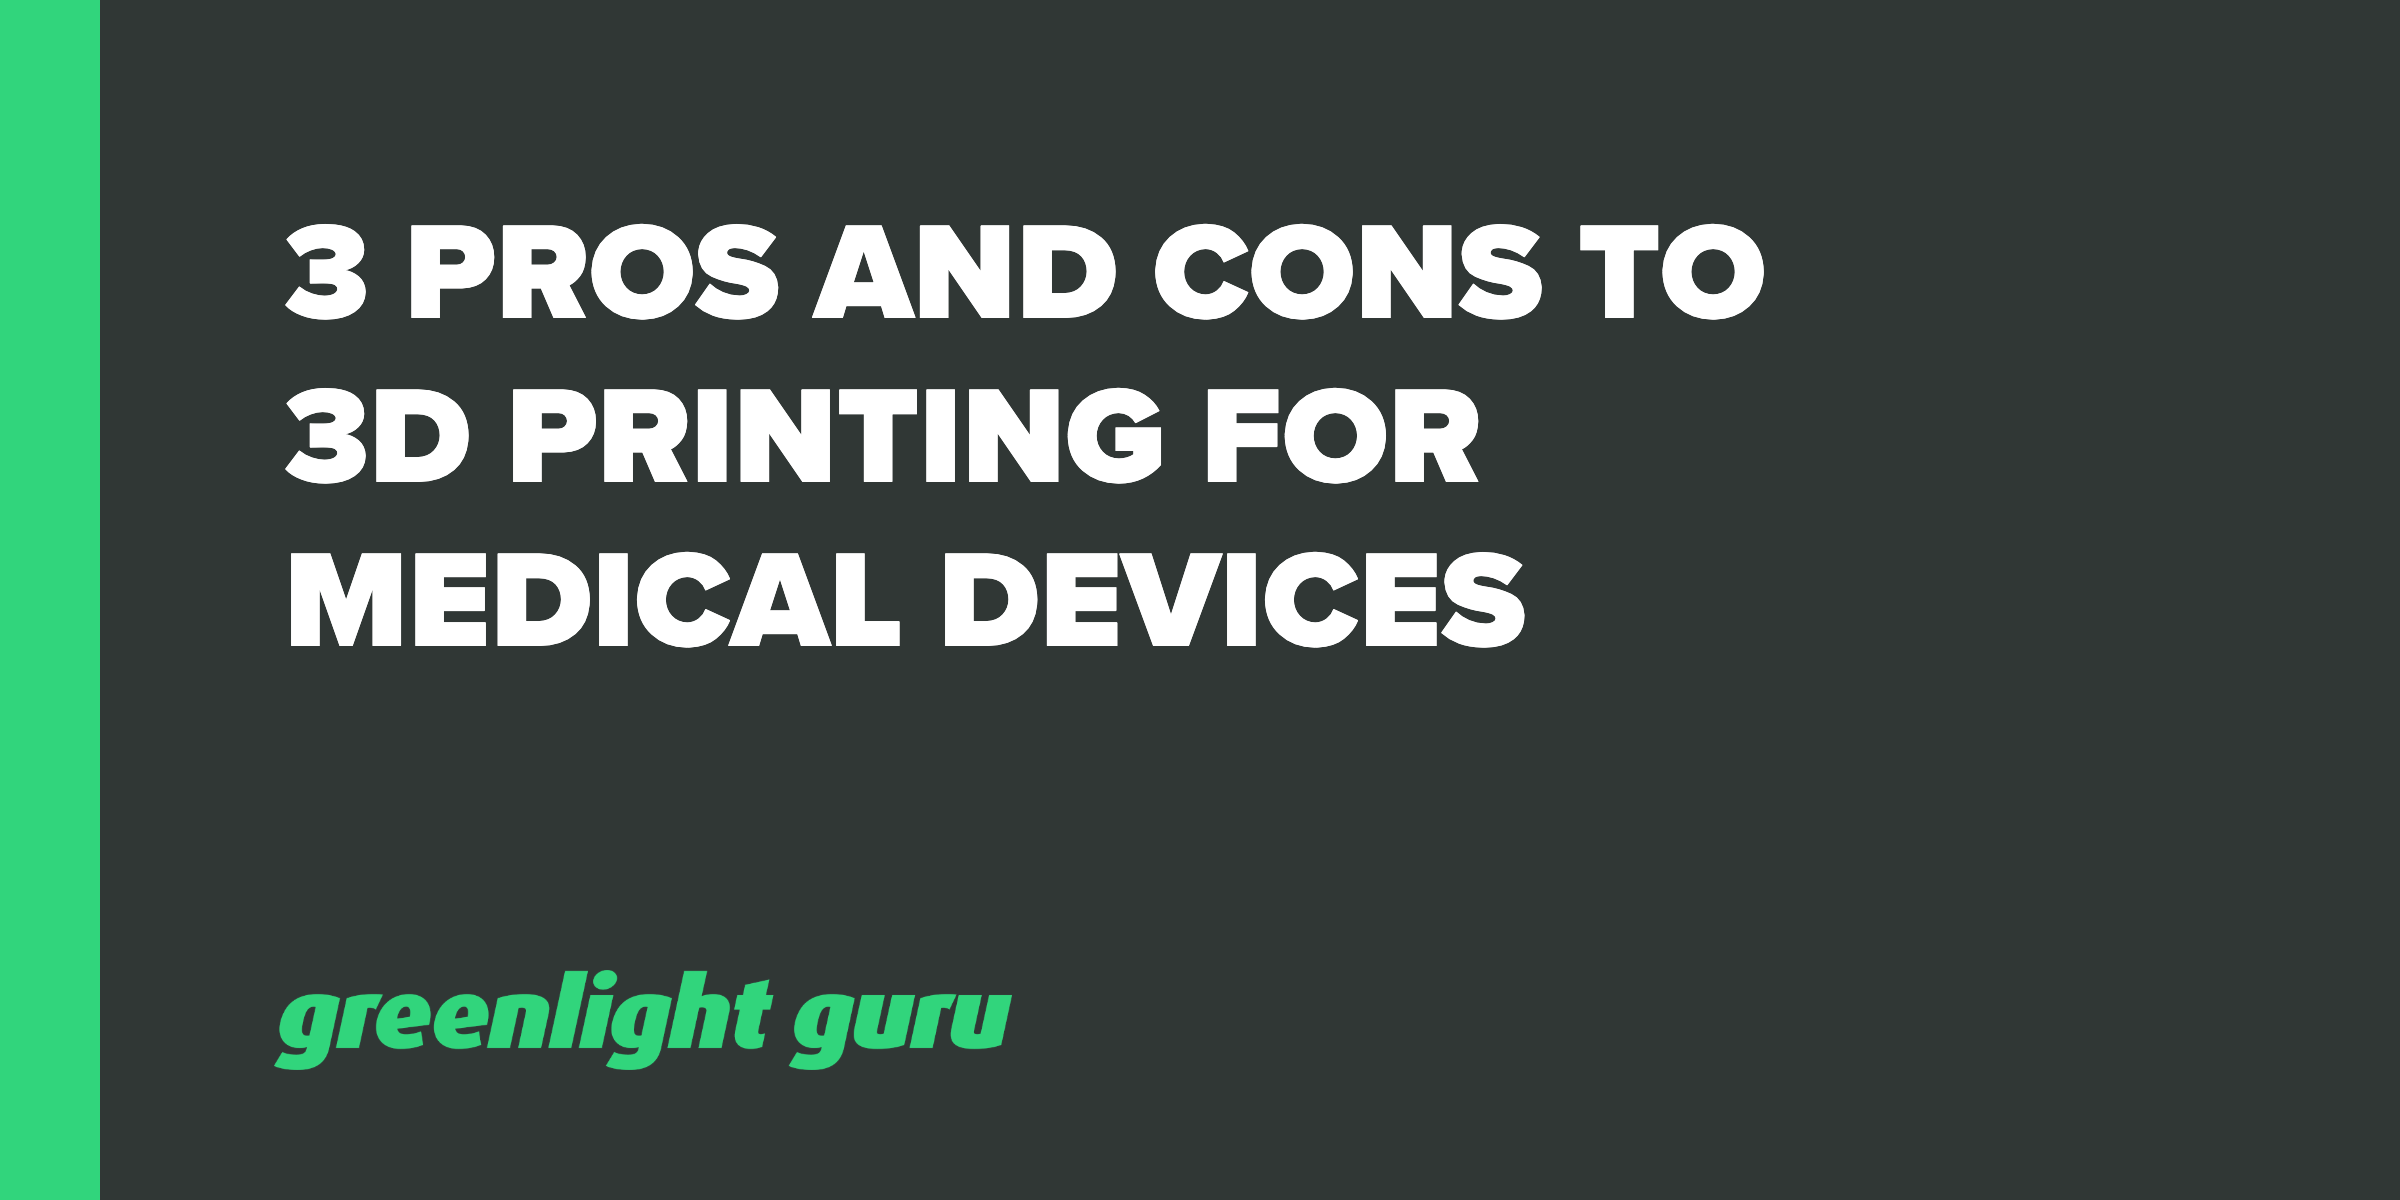 3 pros and cons to 3D printing for medical devices